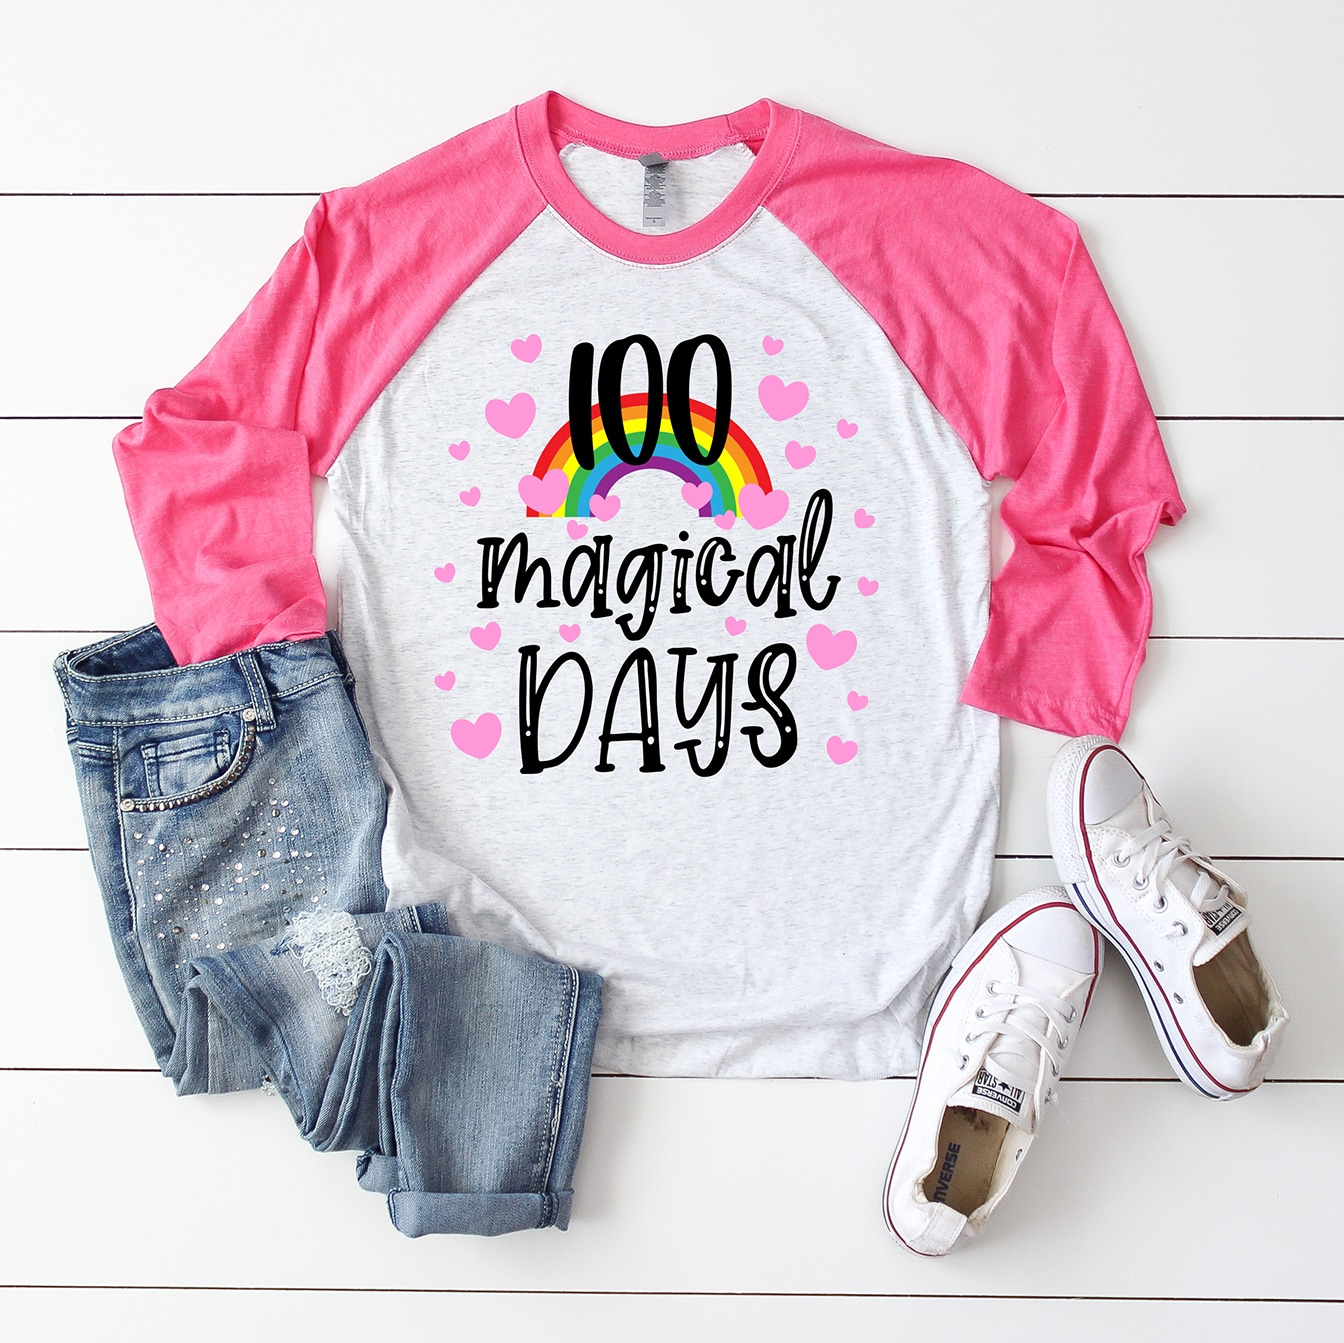 100 Days SVG Svg Files for Cricut Silhouette Files 100 Days of School SVG 100th Day SVG